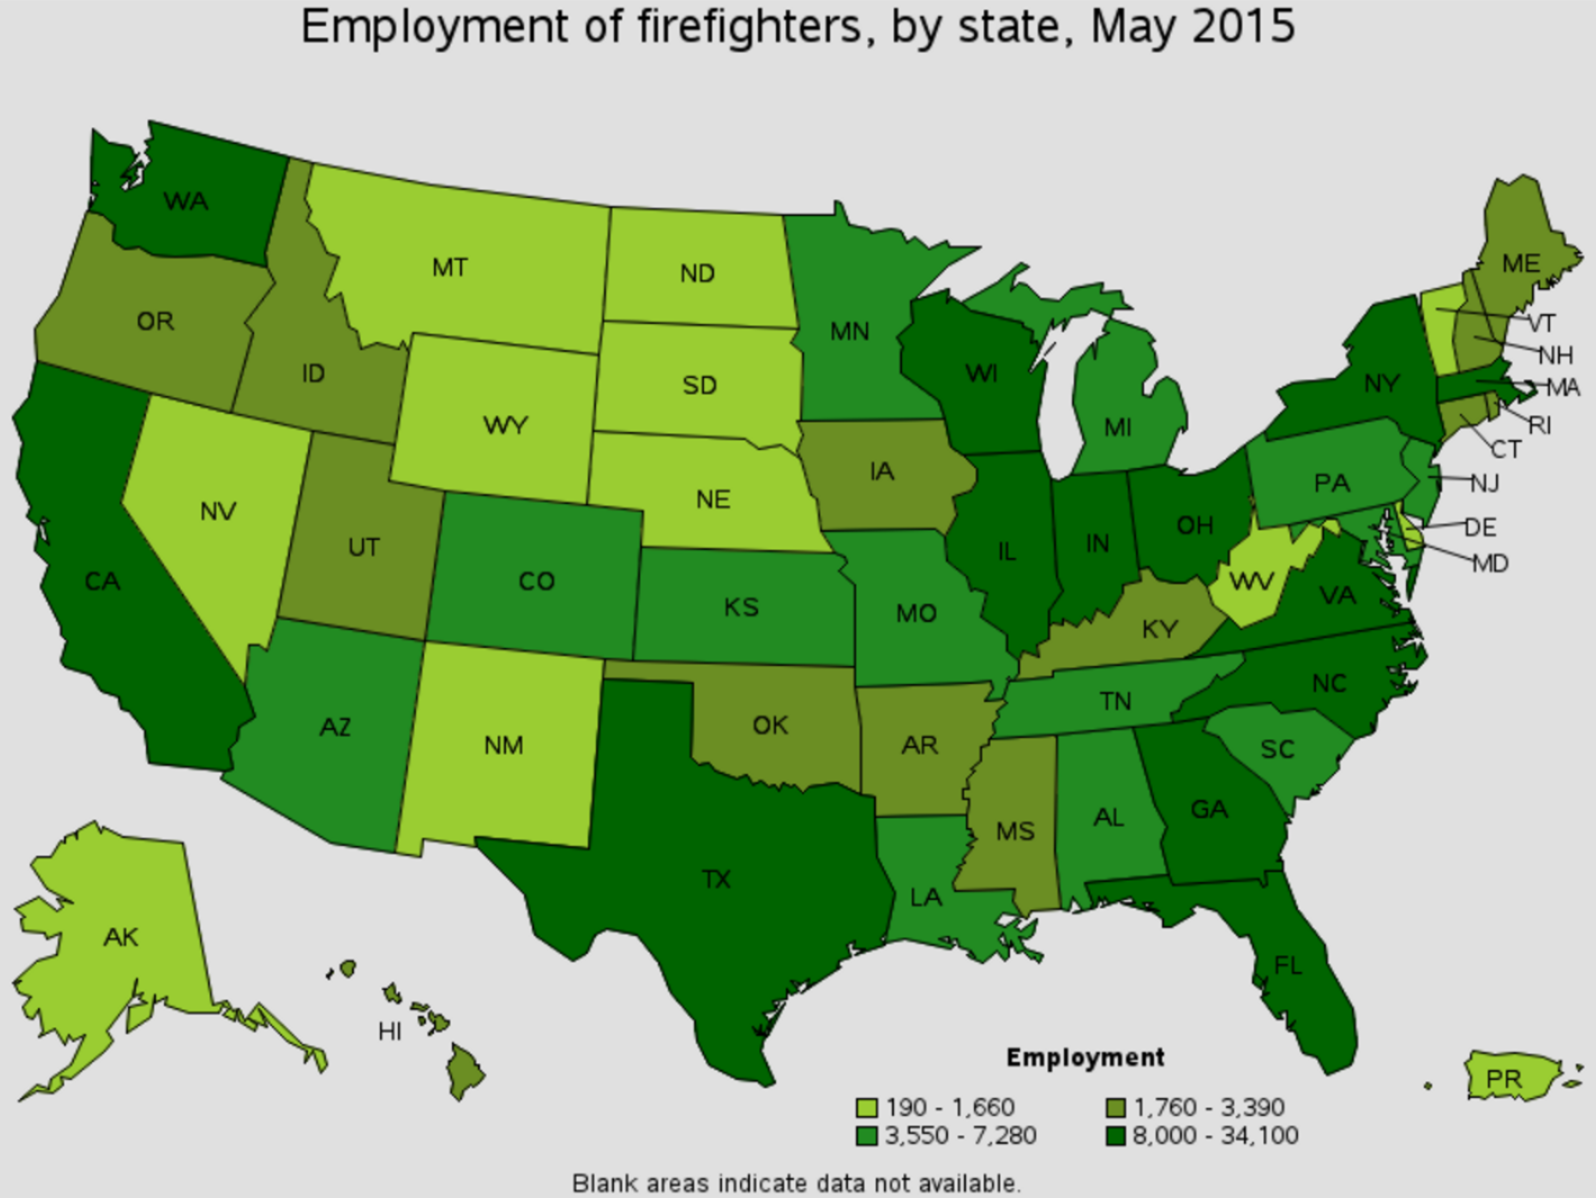 firefighter job outlook by state Wickenburg Arizona